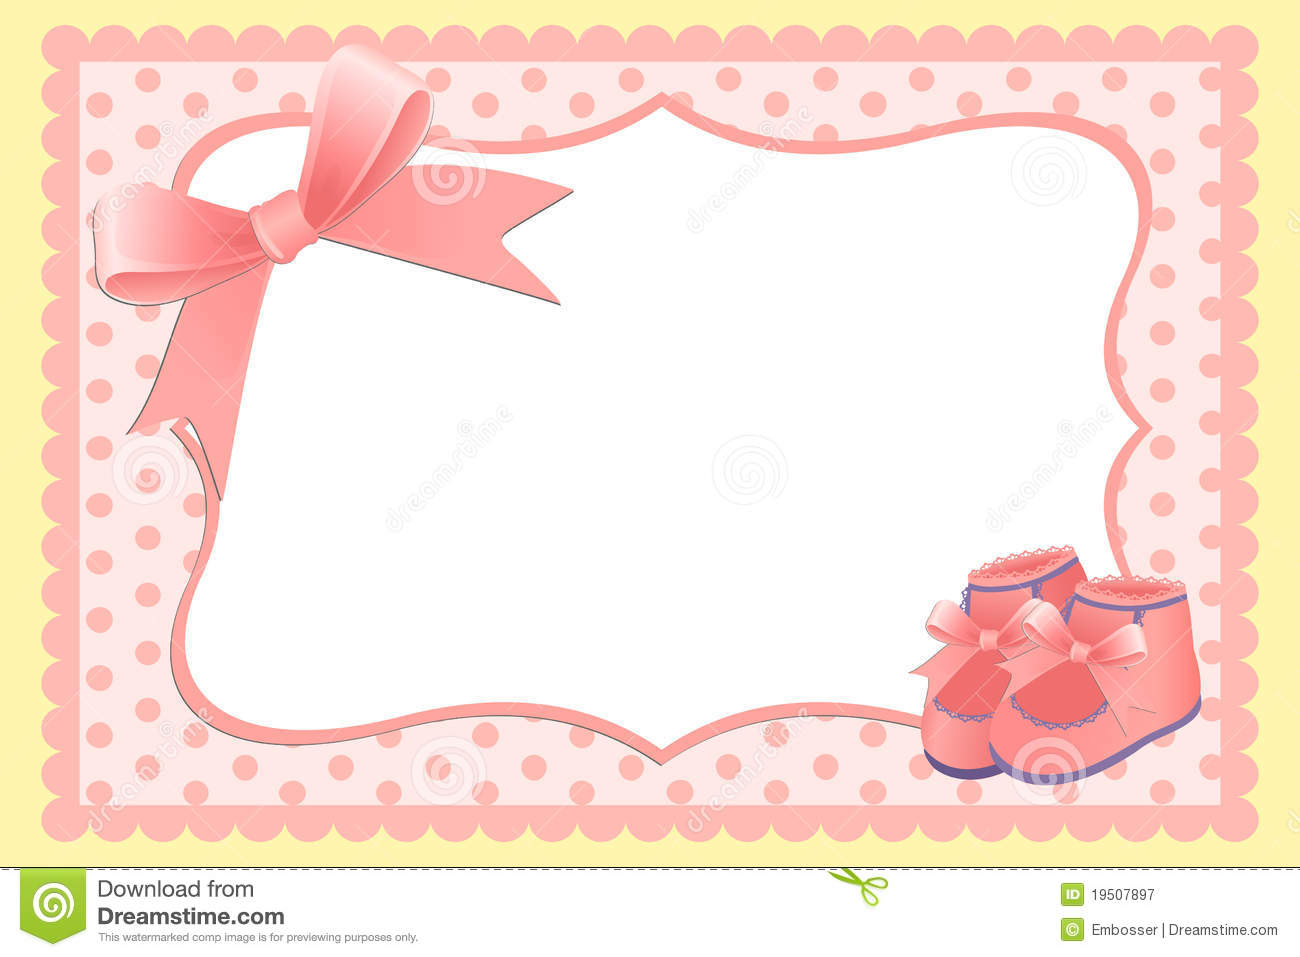 How to make child birth announcement cards in word.